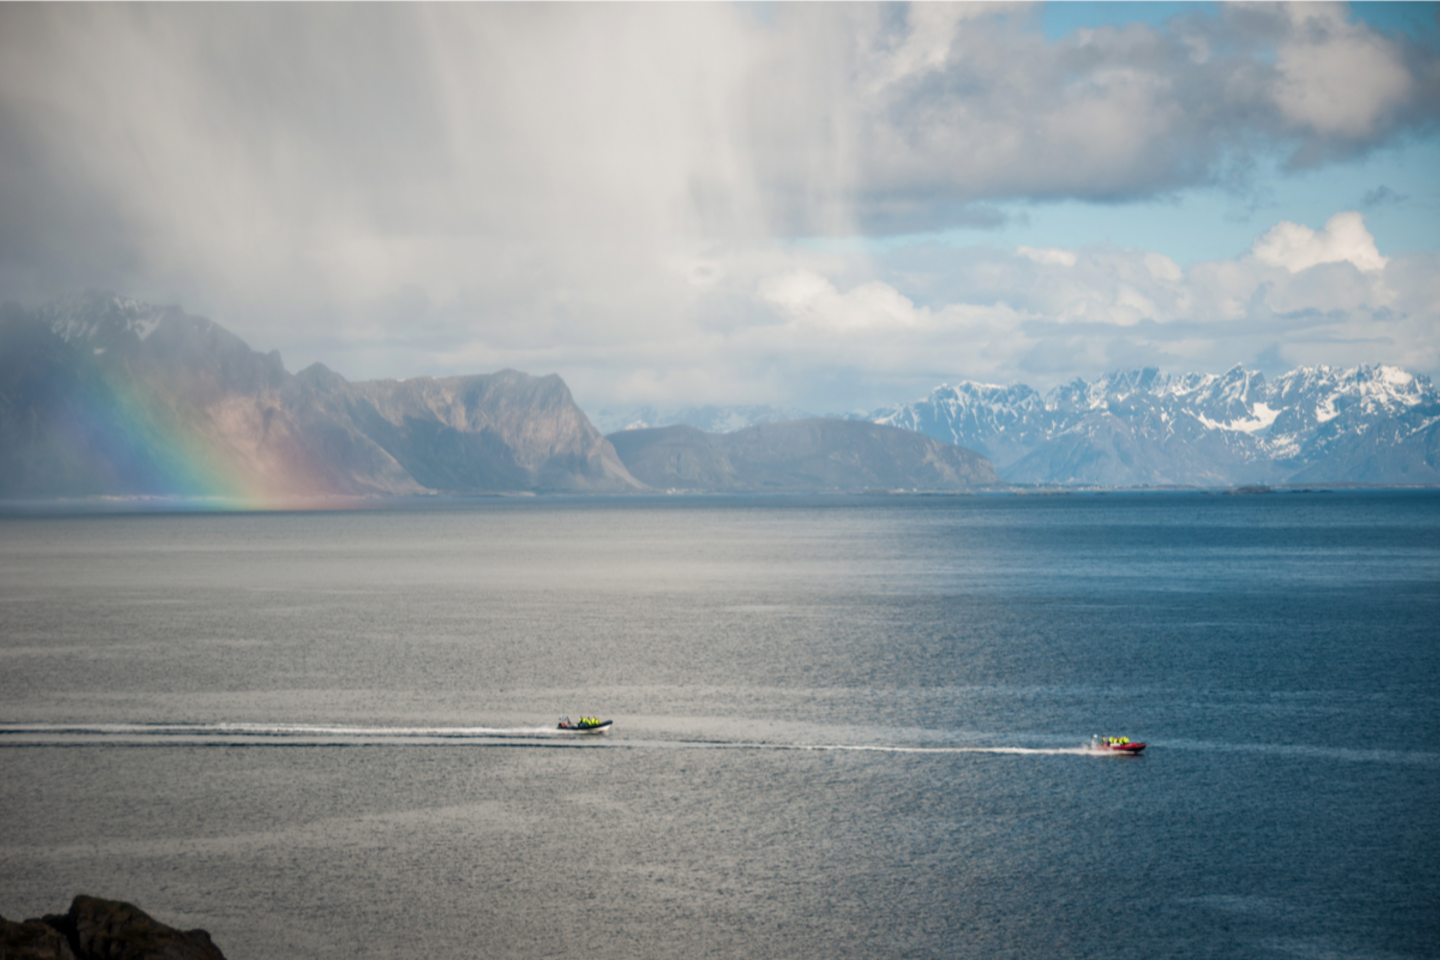 The boat ride from Vinje in Bø in Vesterålen to Litløya - Littleisland takes around 15 minutes, depending on the weather.